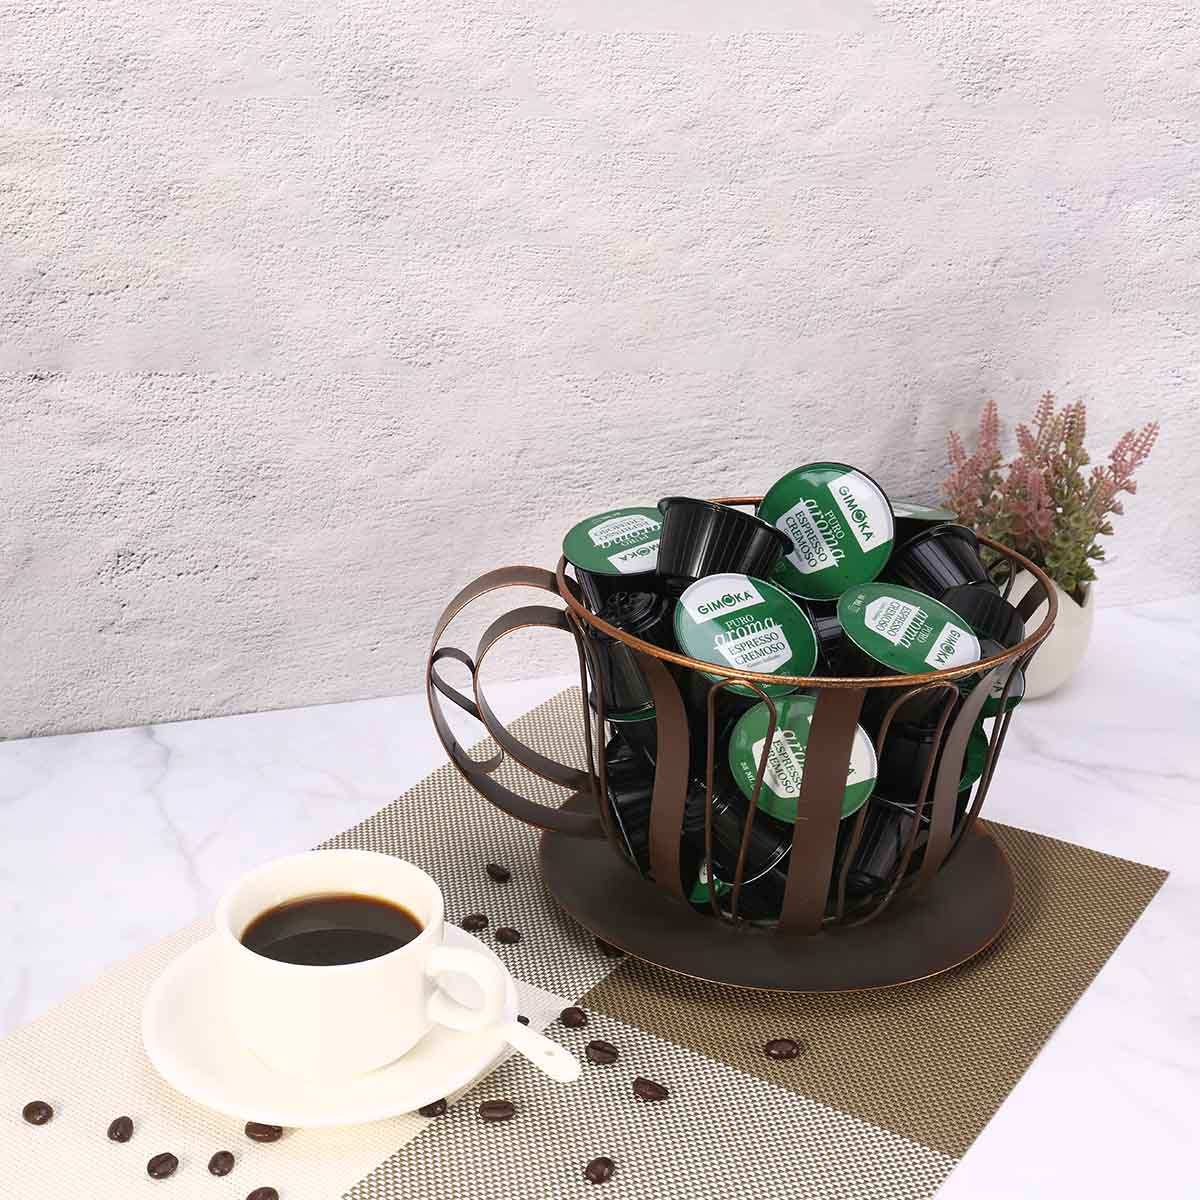 TOOARTS Brown Metal Coffee Pod Container Espresso Pod Holder Home Storage Basket for Fruit Snacks Home Decoration Accessories